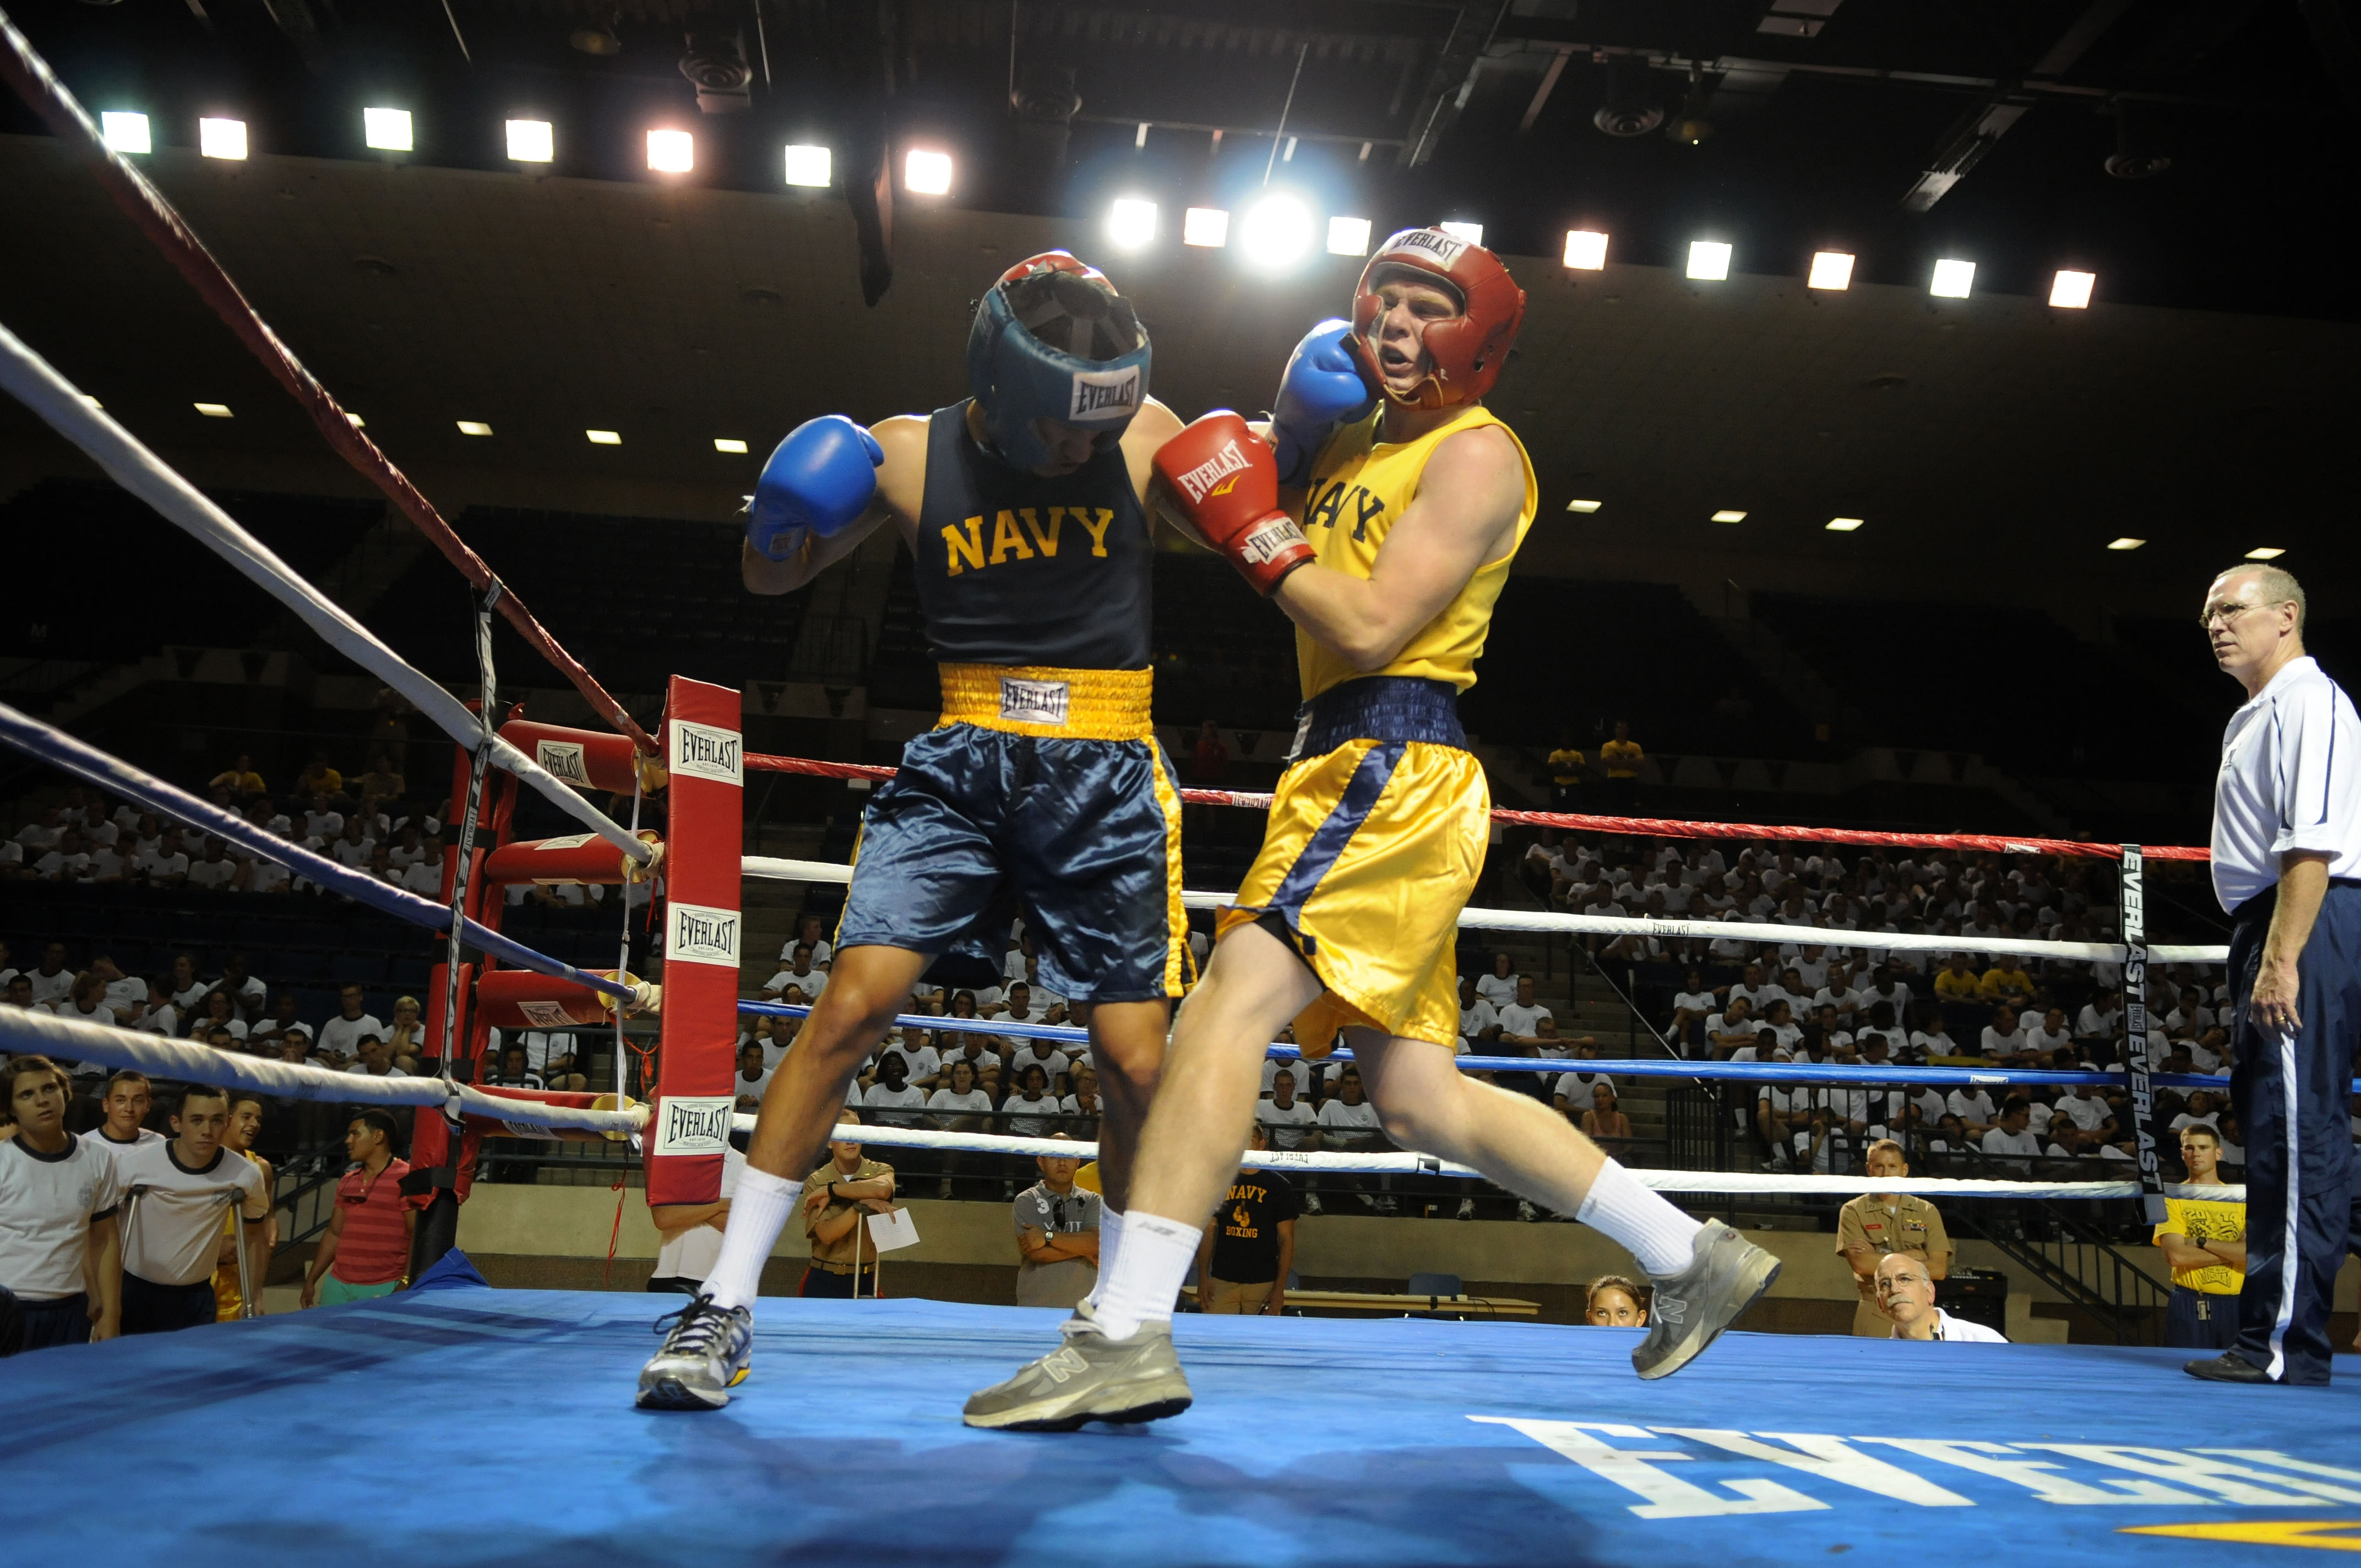 120804-N-OA833-006 ANNAPOLIS, Md. (Aug. 4, 2012) U.S. Naval Academy Midshipman 4th Class Mario Kohn, left, connects with a punch during the 147 lb. weight class bout of the annual Plebe Boxing Smoker held in Alumni Hall. Every plebe receives an introduction to boxing during plebe summer training. Plebe summer is a physically and mentally demanding six-week process designed to transition the new class of students from civilian to midshipman life. (U.S. Navy photo by Mass Communication Specialist 1st Class Chad Runge/Released)